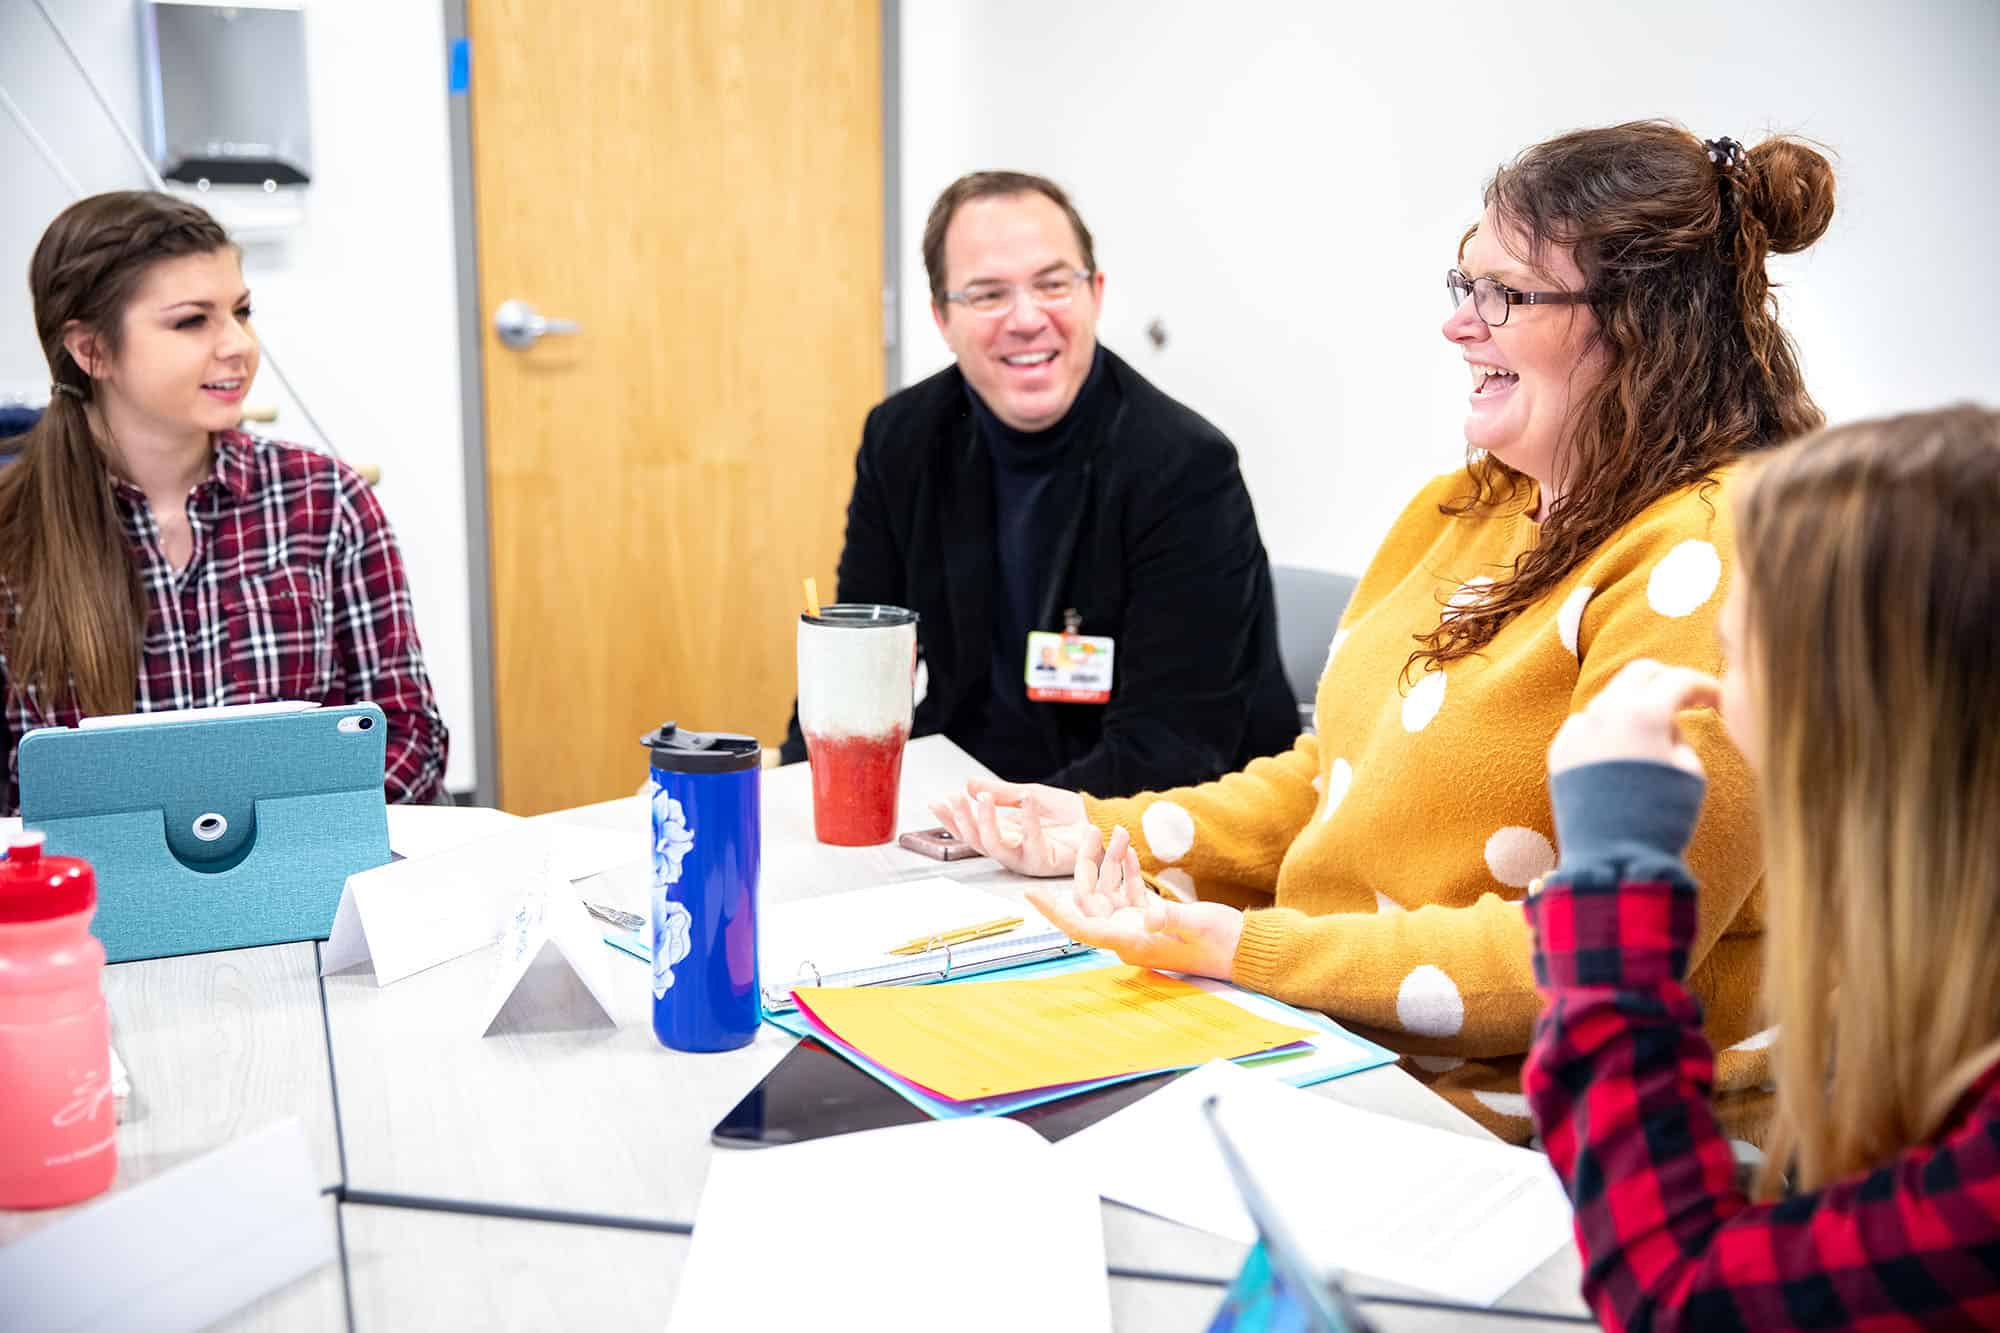 Mark Koch, OTD, (center) speaks with students Awbrey Gibby and Sarah Arenas during a class in January.